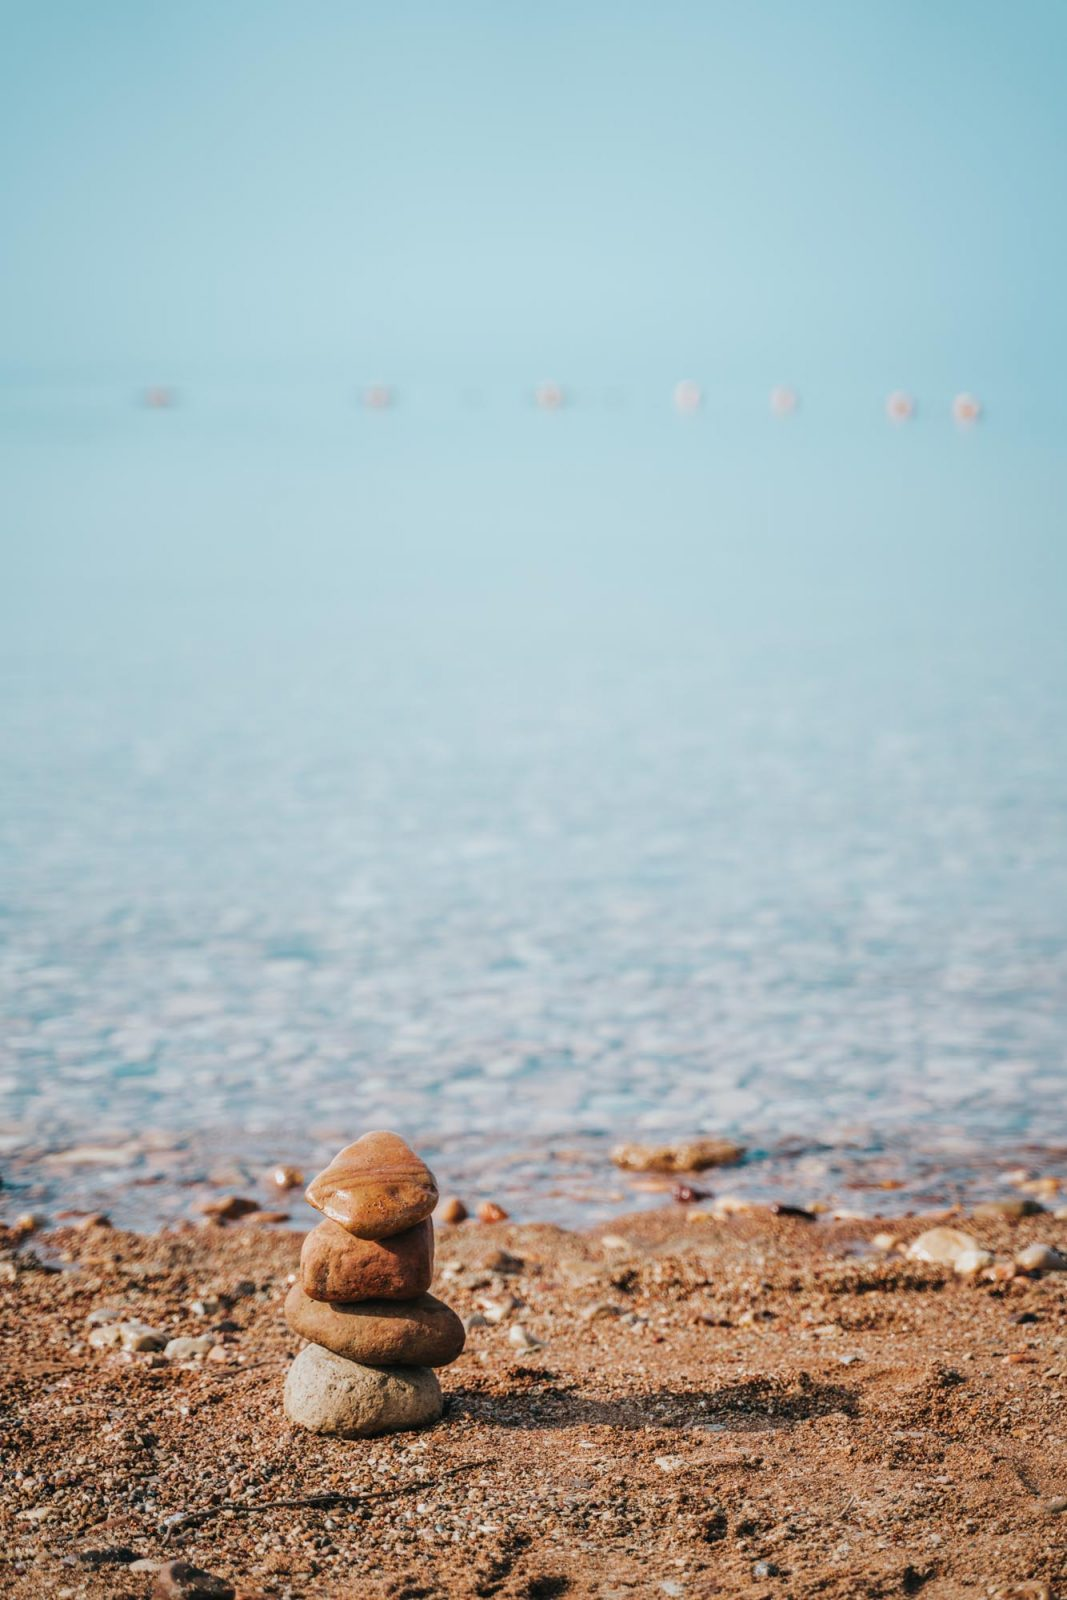 Things to see in Jordan: Dead Sea